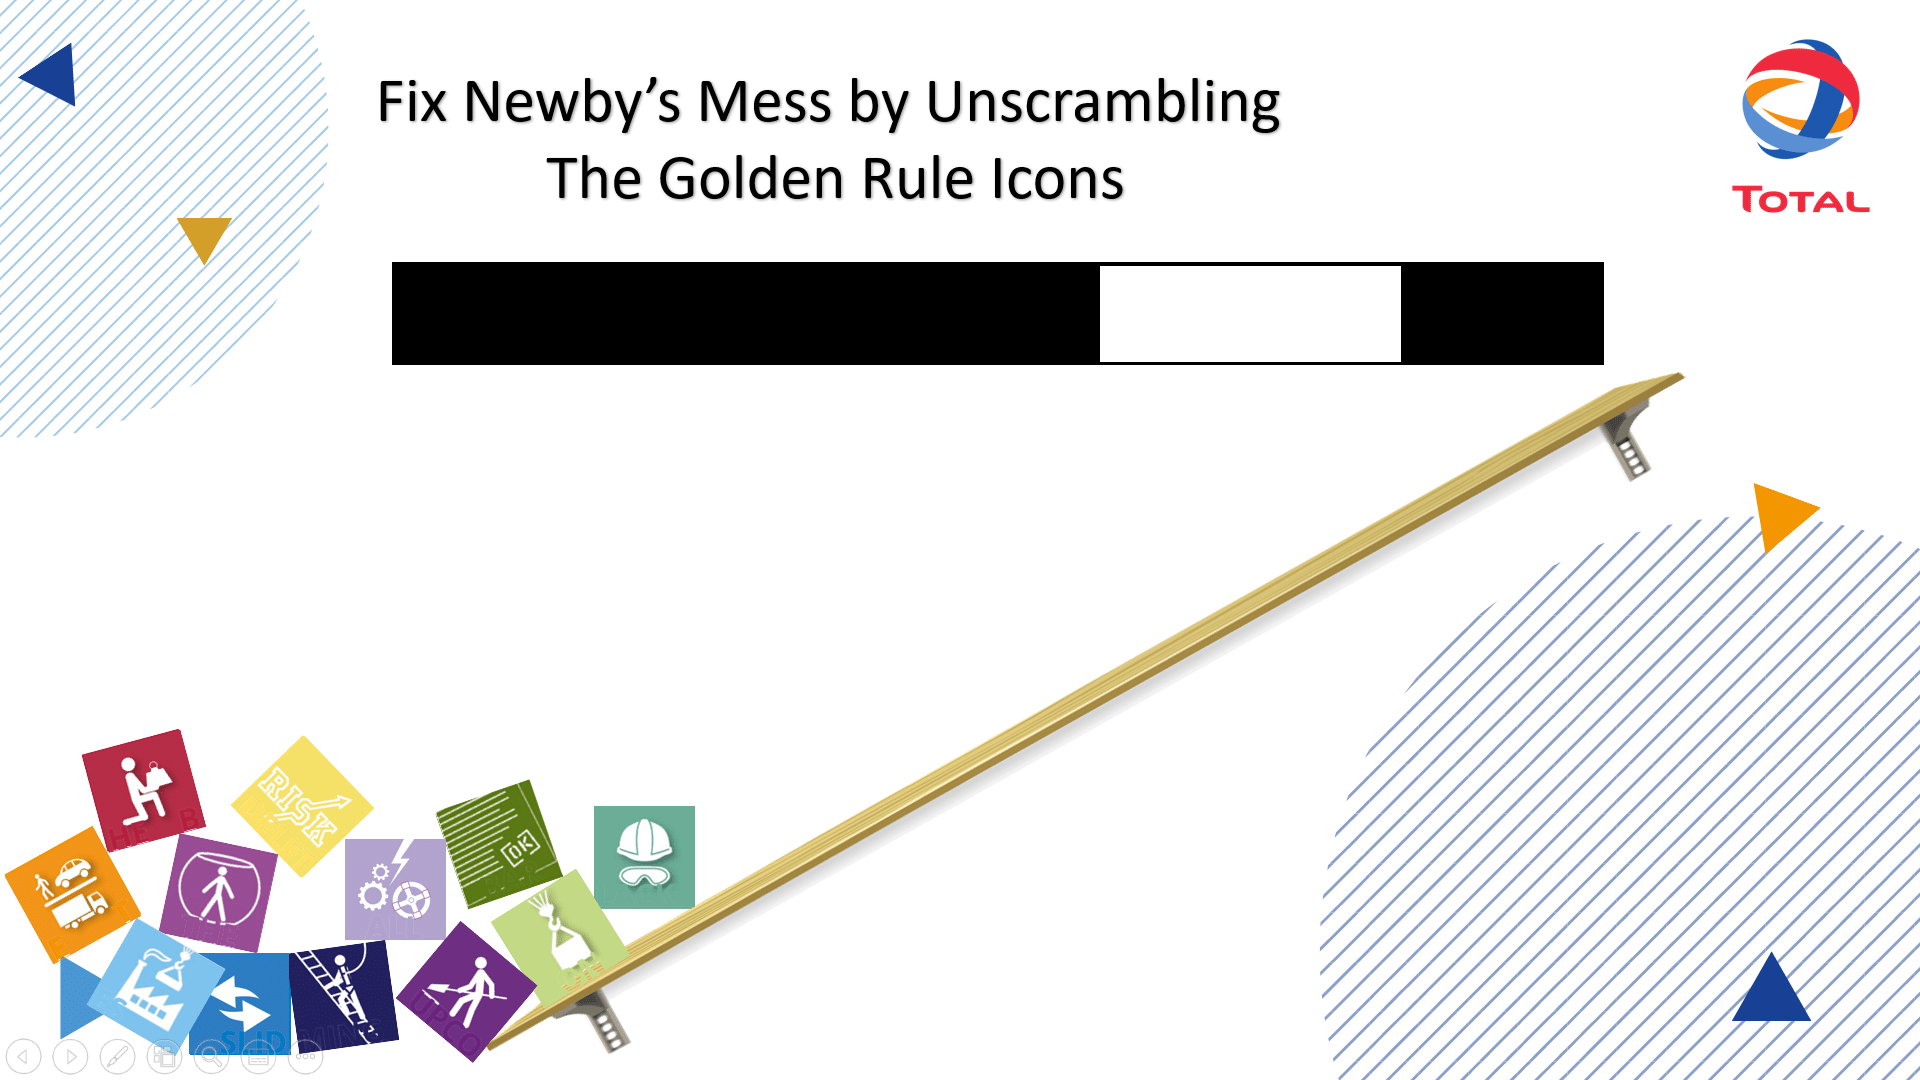 Unscramble the Golden Rules